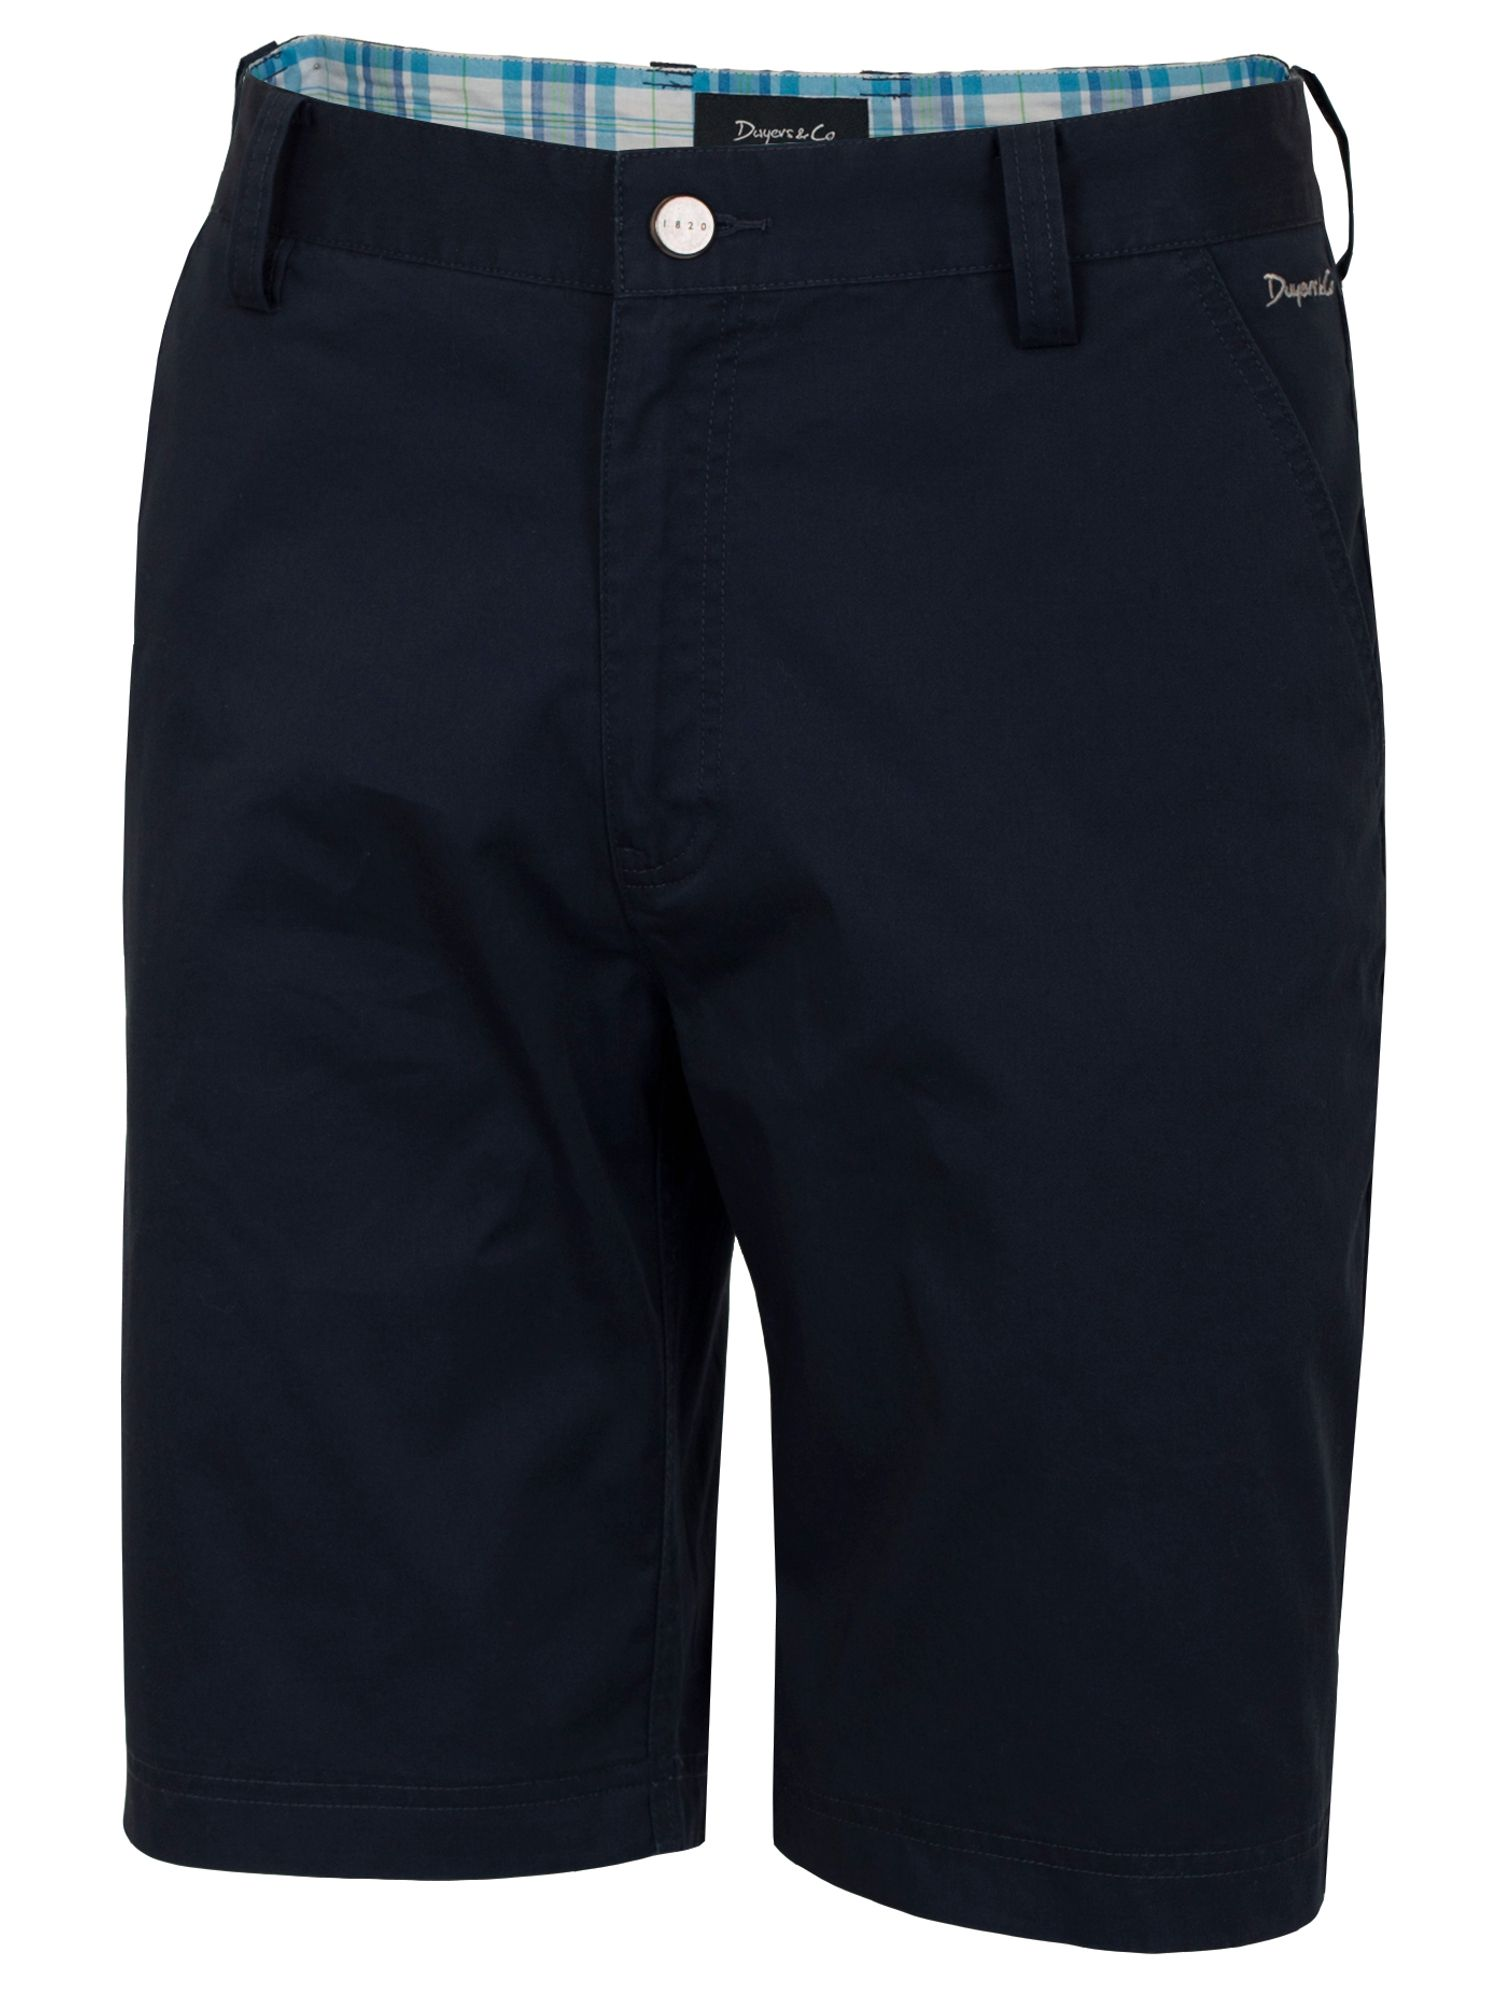 Dwyers and Co Men's Dwyers and Co Titanium Chino Shorts, Navy